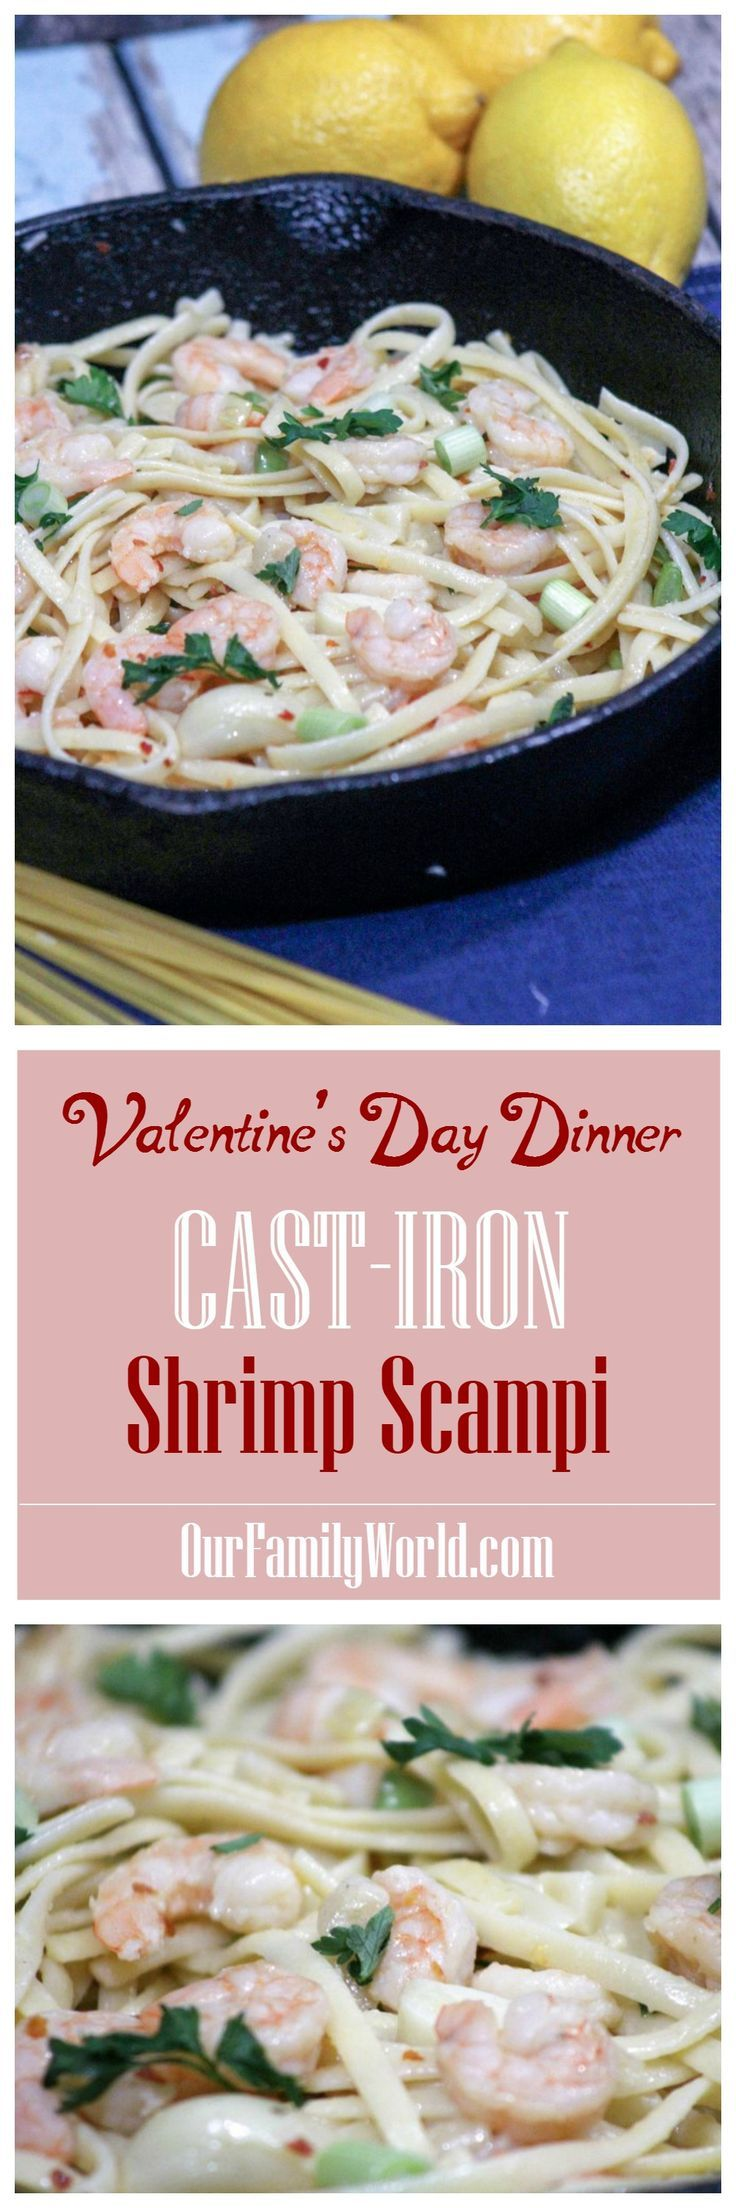 Have your significant other spoil you with a delicious Valentine's Day dinner recipe! Our cast-iron Shrimp Scampi is easy to make and very romantic!